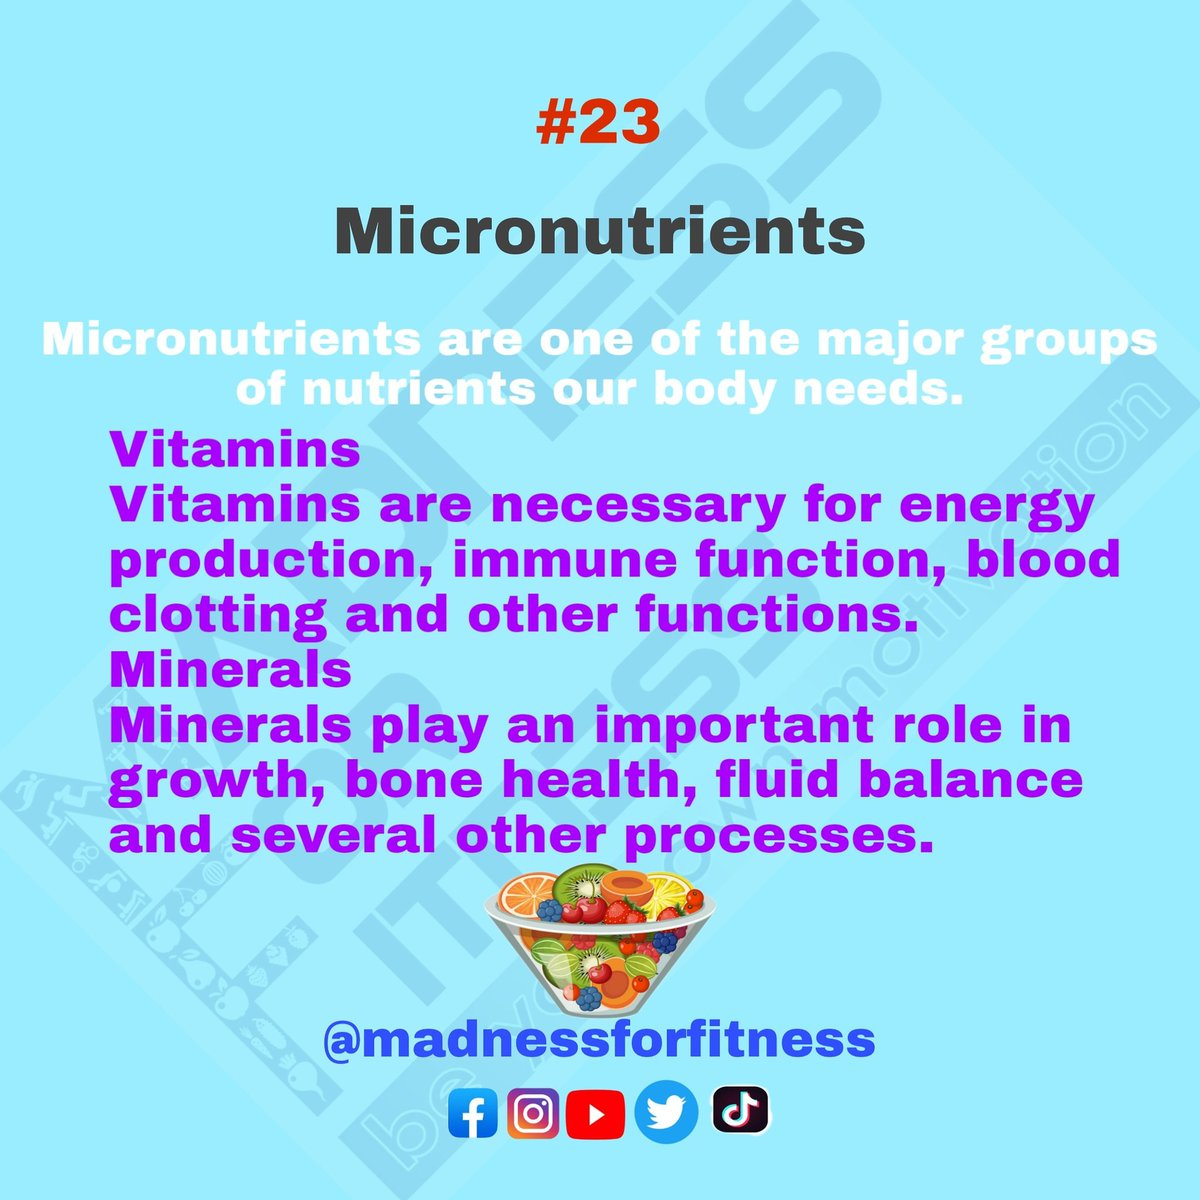 Micronutrients include vitamins and minerals. They're critical for several important functions in your body and must be consumed from food....Follow @madnessforfitness   #madnessforfitness #micronutrients #nutrition #diet #Homeworkout #IndiaFightsCorona #indianfitness pic.twitter.com/Vqlk38pTsg